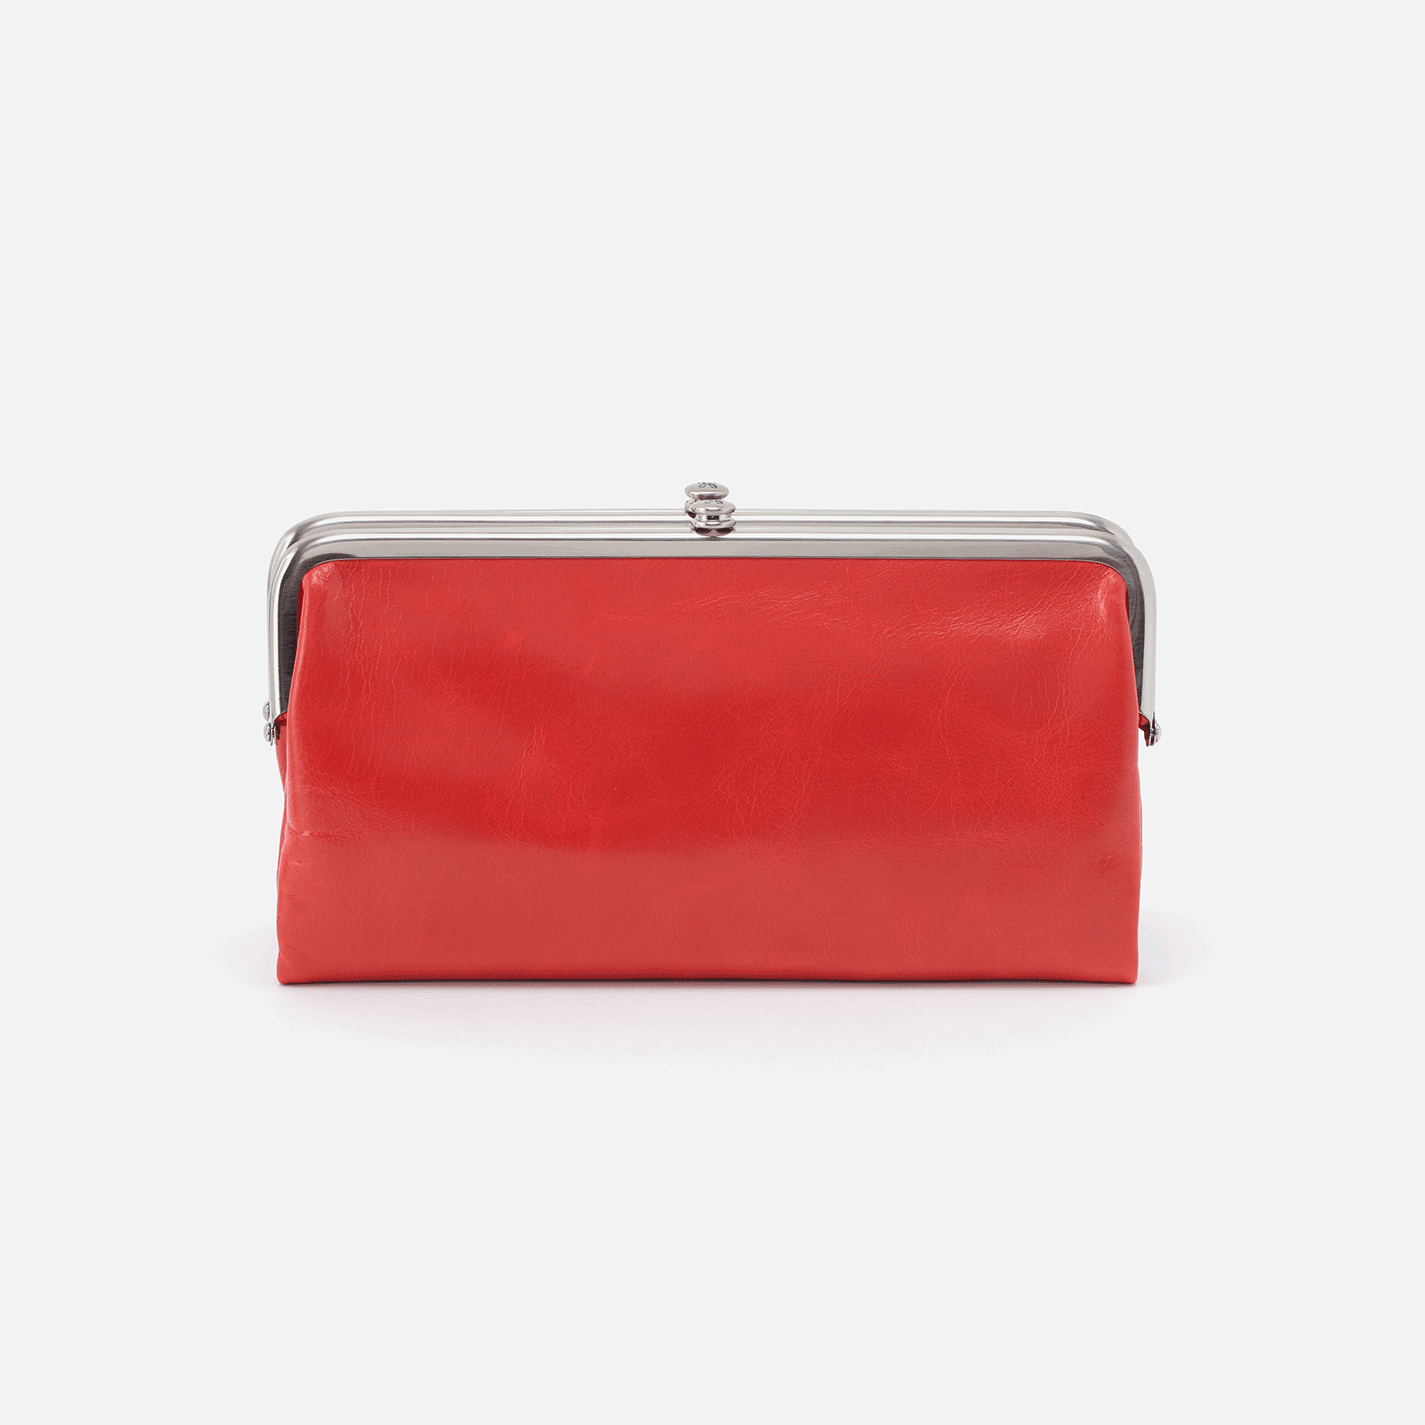 Hobo - LAUREN Leather Clutch Wallet - Rio, Front View